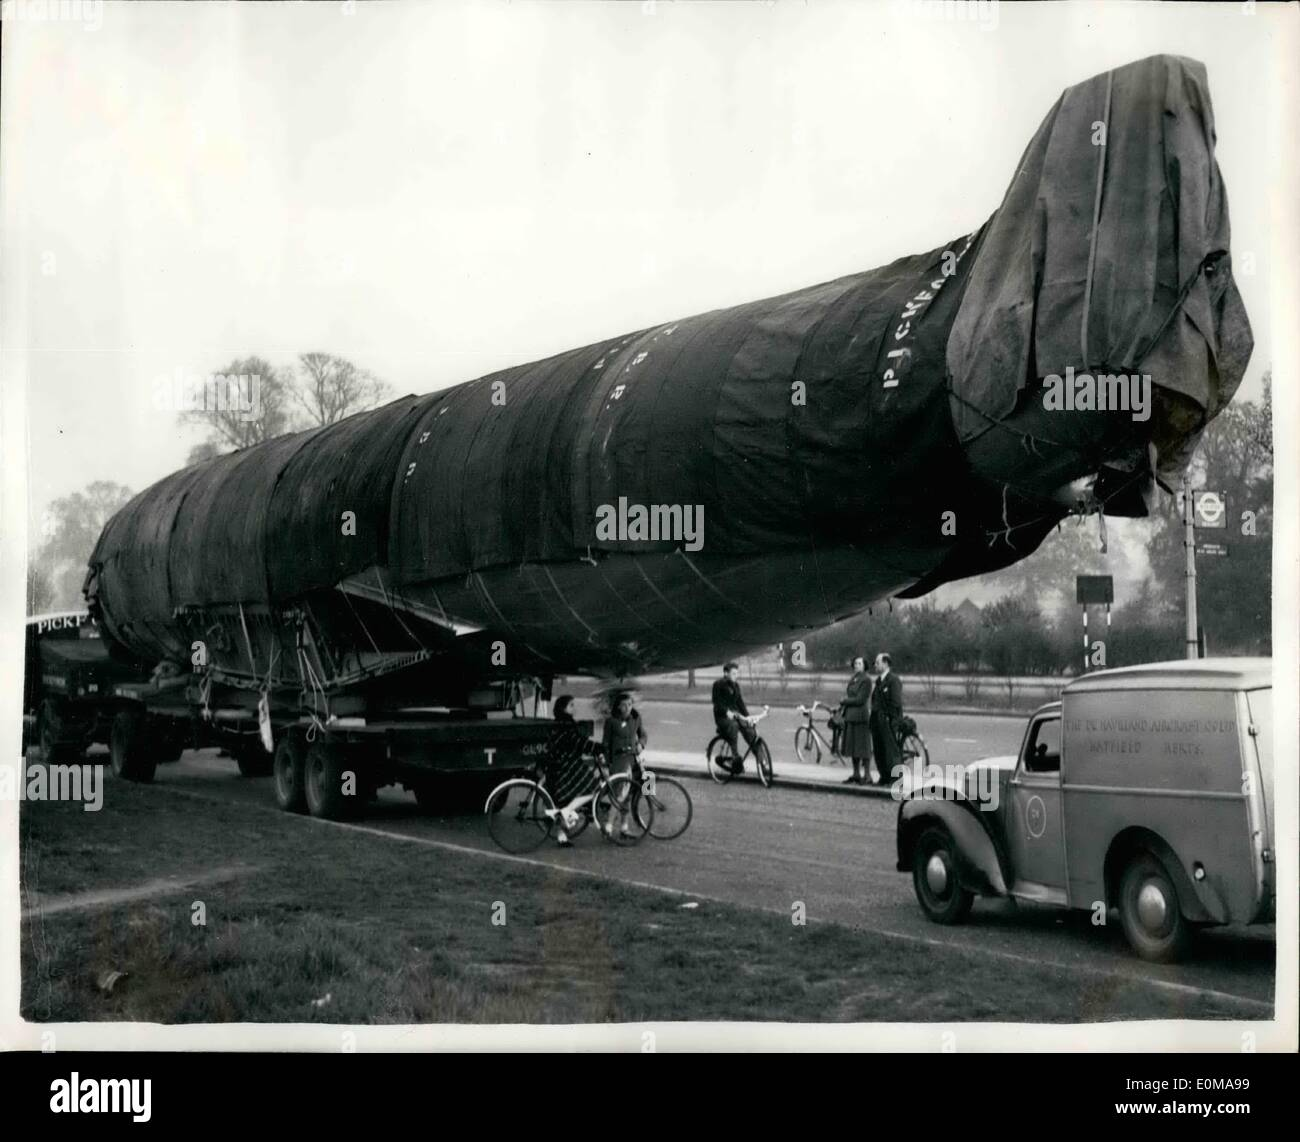 May 05, 1954 - The comet fuselage looks like a whale : looking very like a whale - is this fuselage of a B.O.A.C. Comet aircraft - on its way to the royal aircraft establishment at farnborough for special tests it is seen in western avenue, northolt. - Stock Image